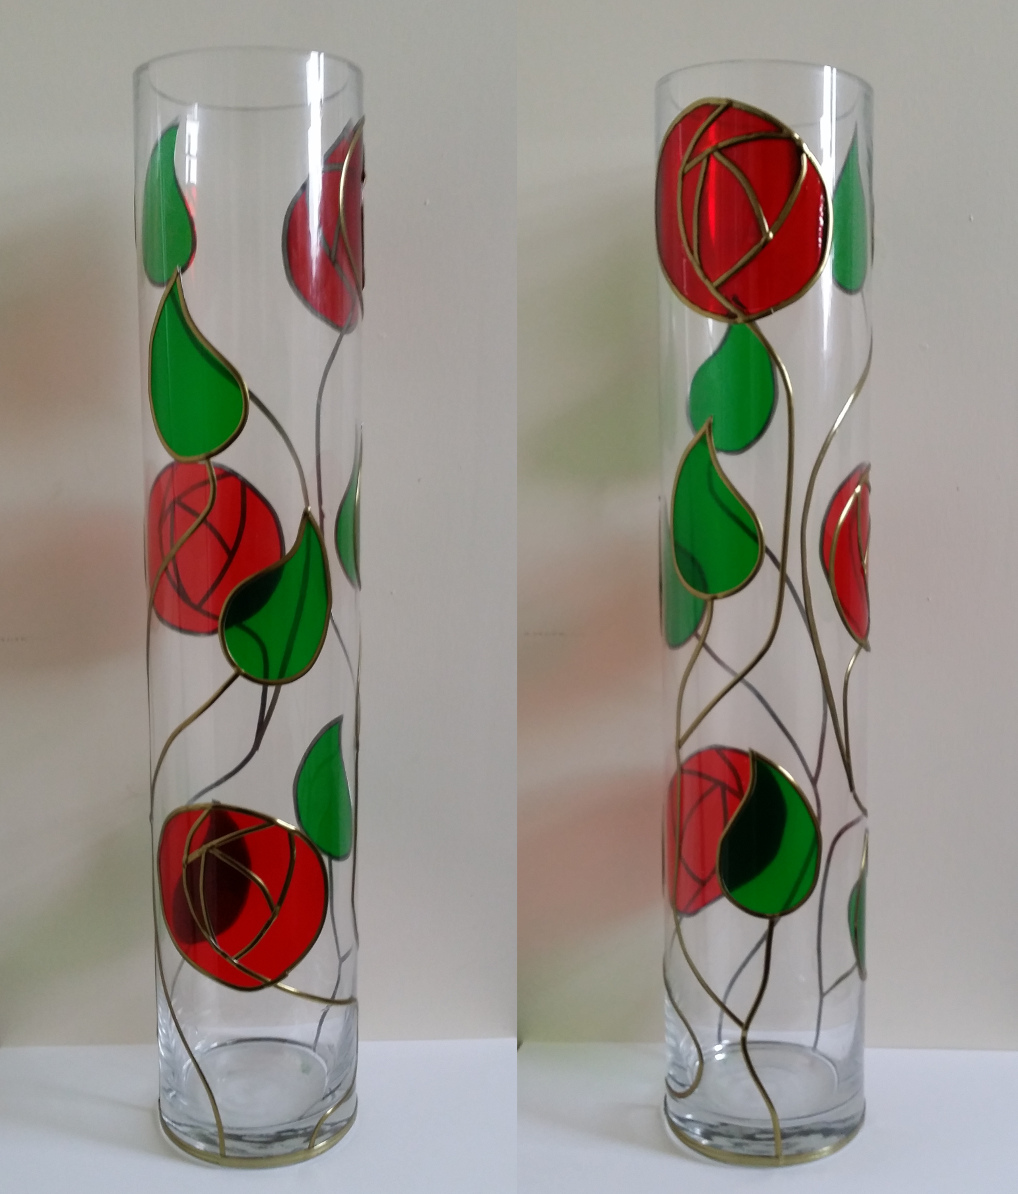 Glass Painted Mackintosh vase, Paint Review and Lesson.